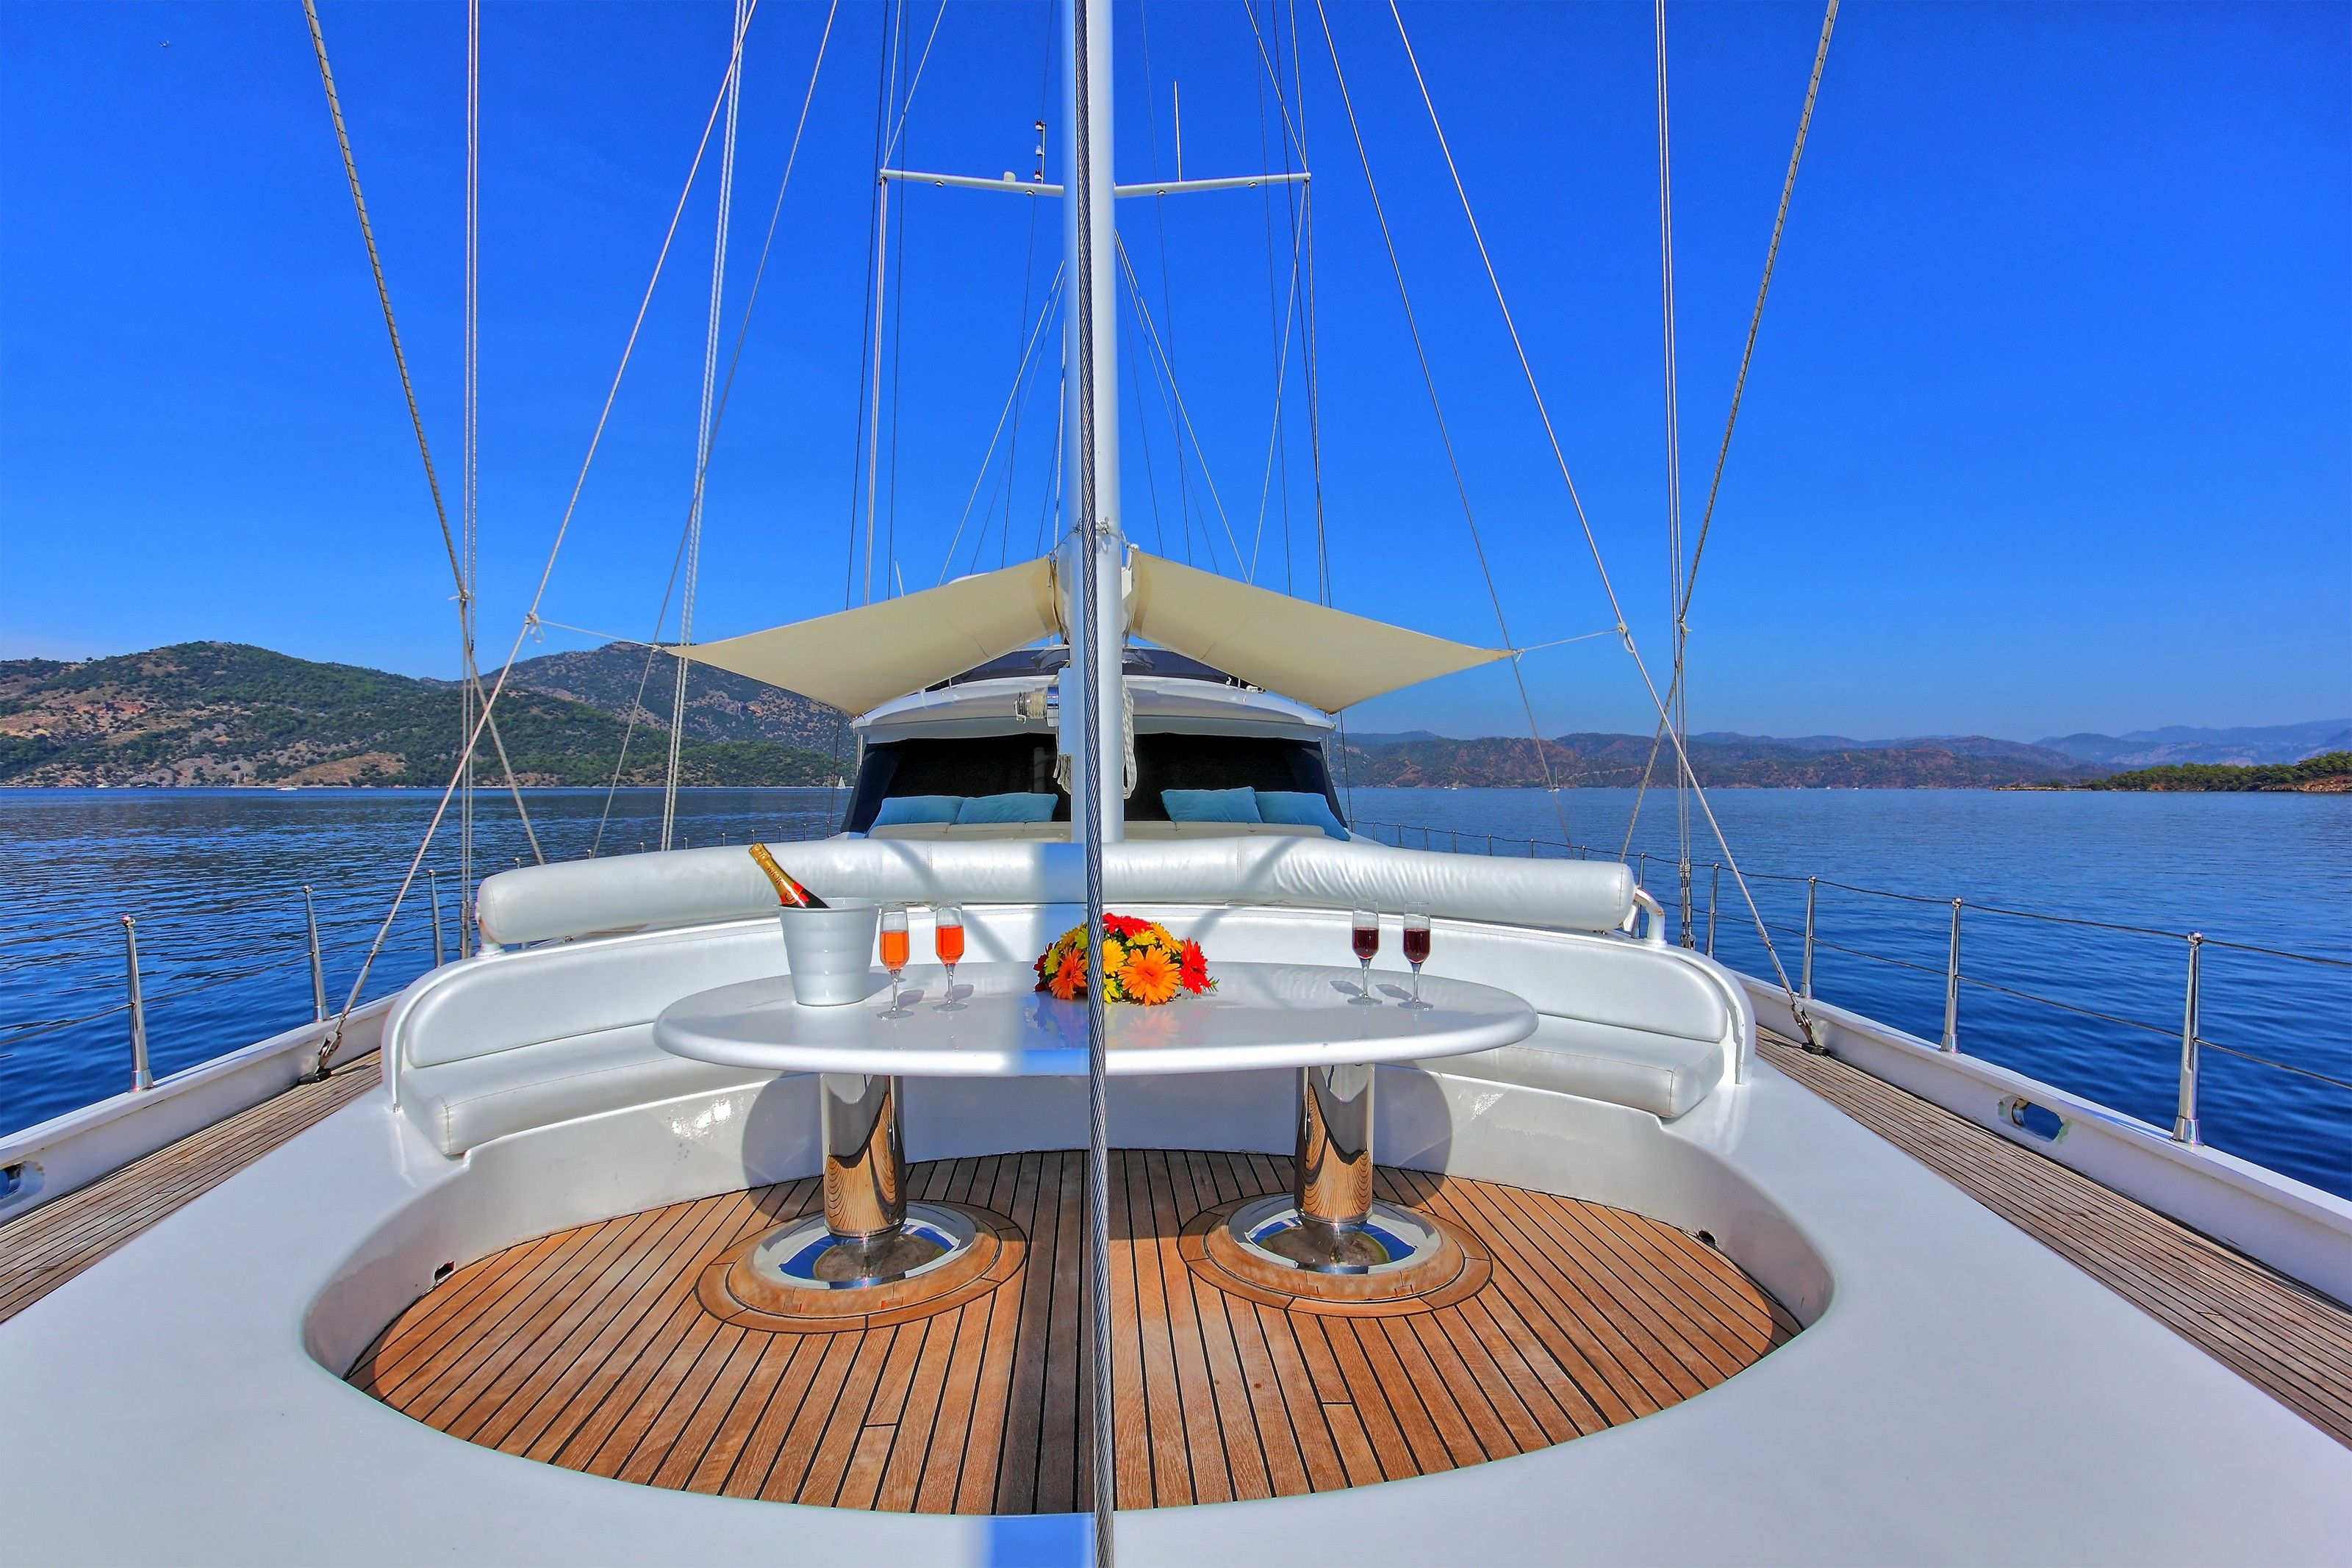 Yacht charter and yacht for Sale Contact us